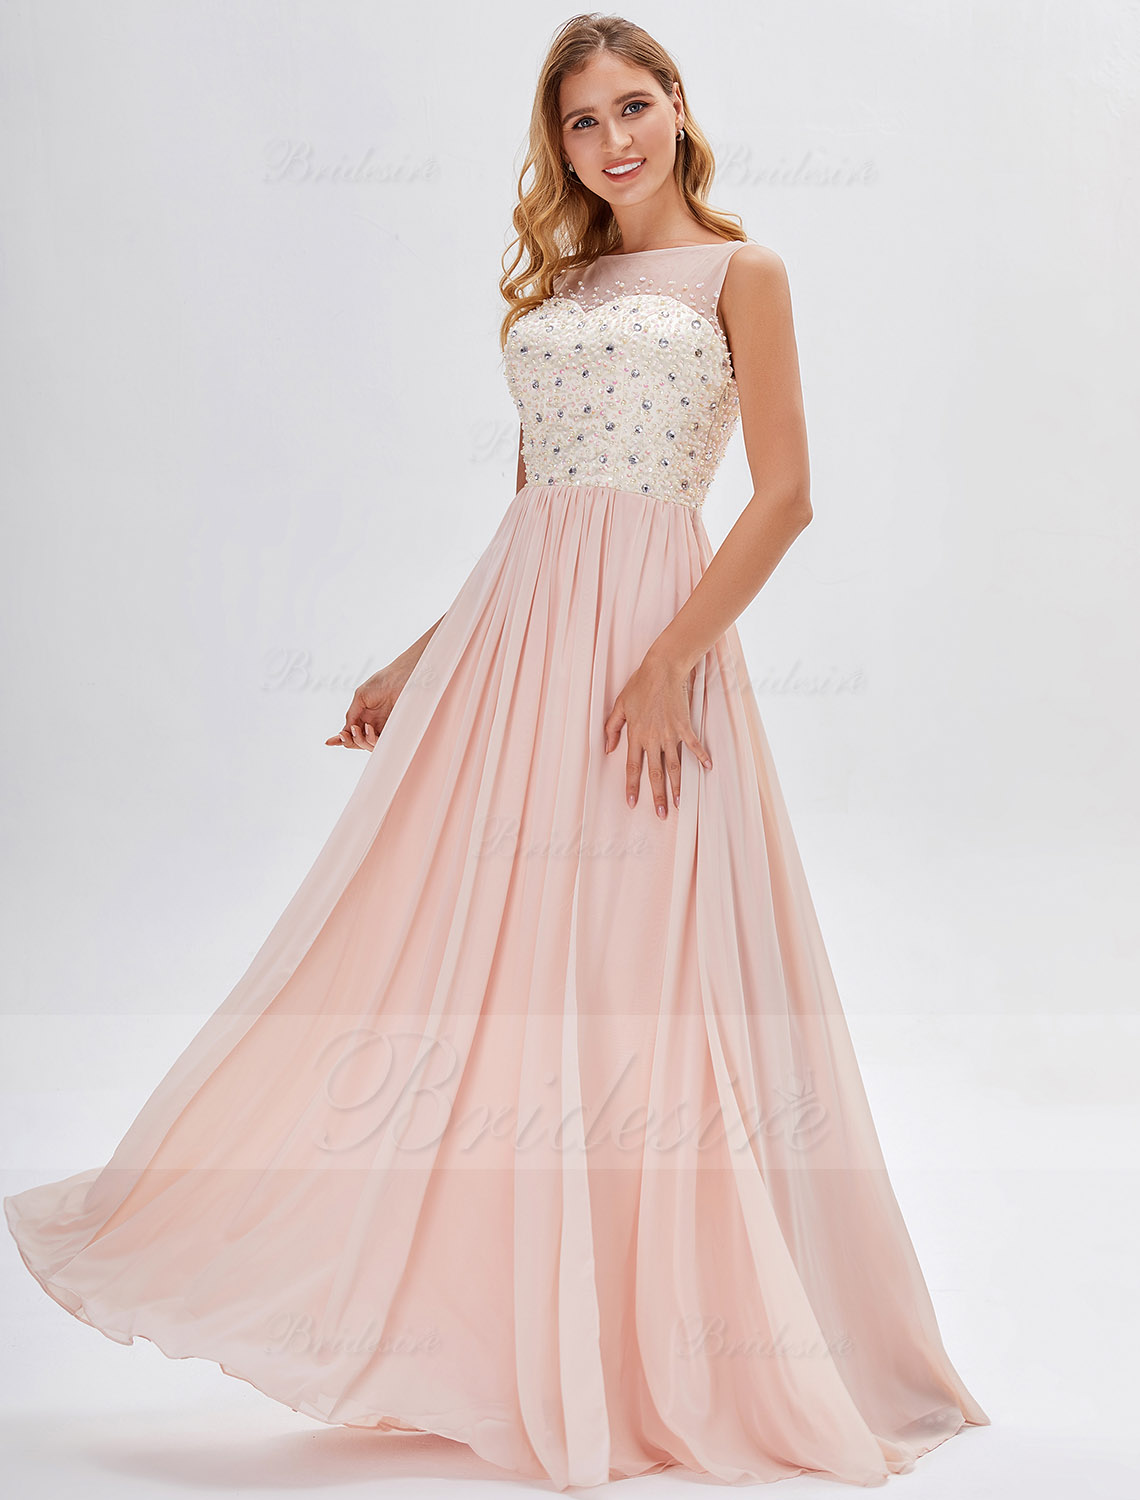 A-line High Neck Floor-length Chiffon Tulle Evening Dress